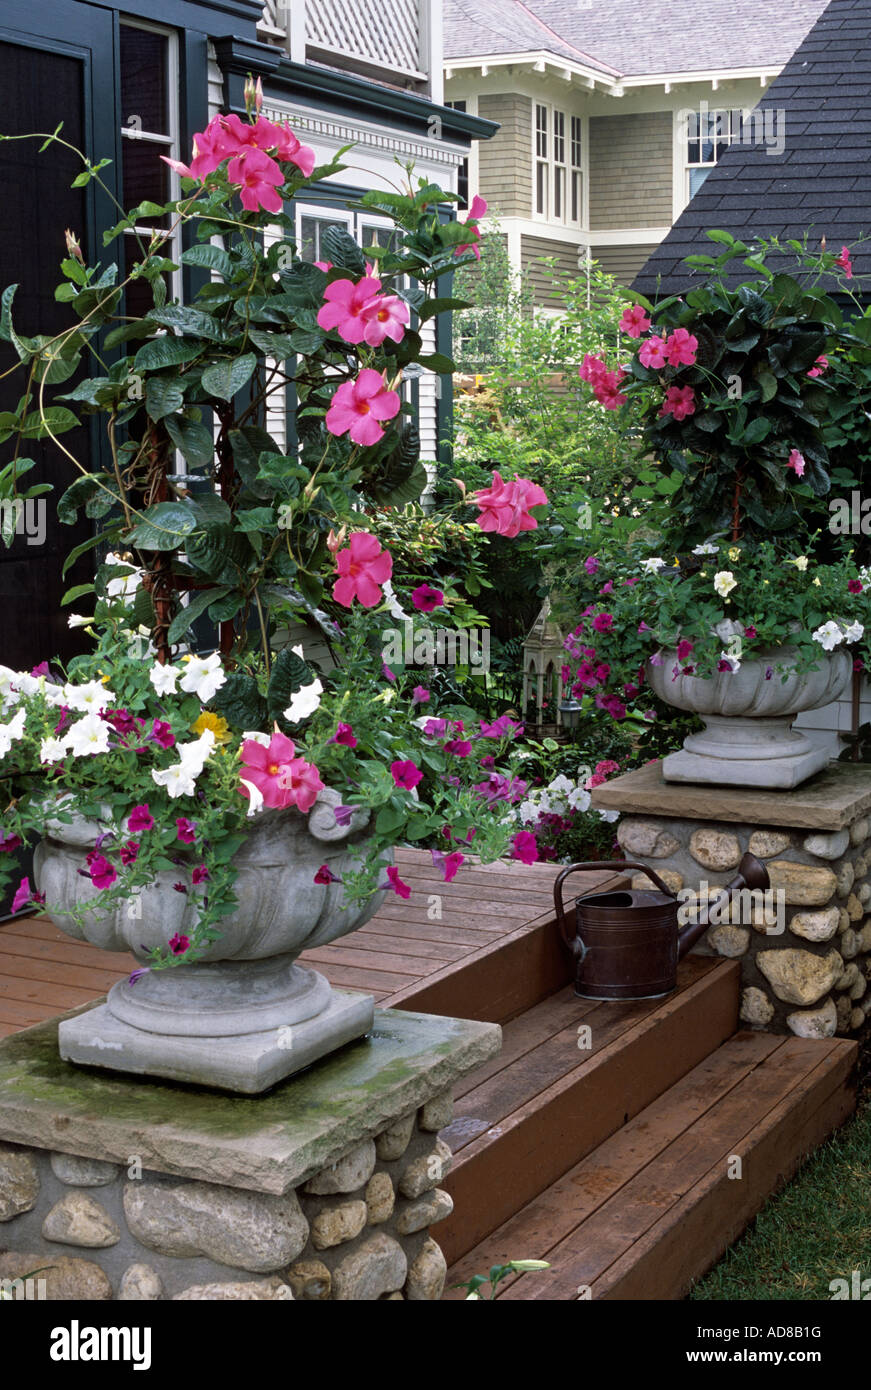 Back porch of minneapolis minnesota home with pots of mandevilla stock photo royalty free - Growing petunias pots balconies porches ...